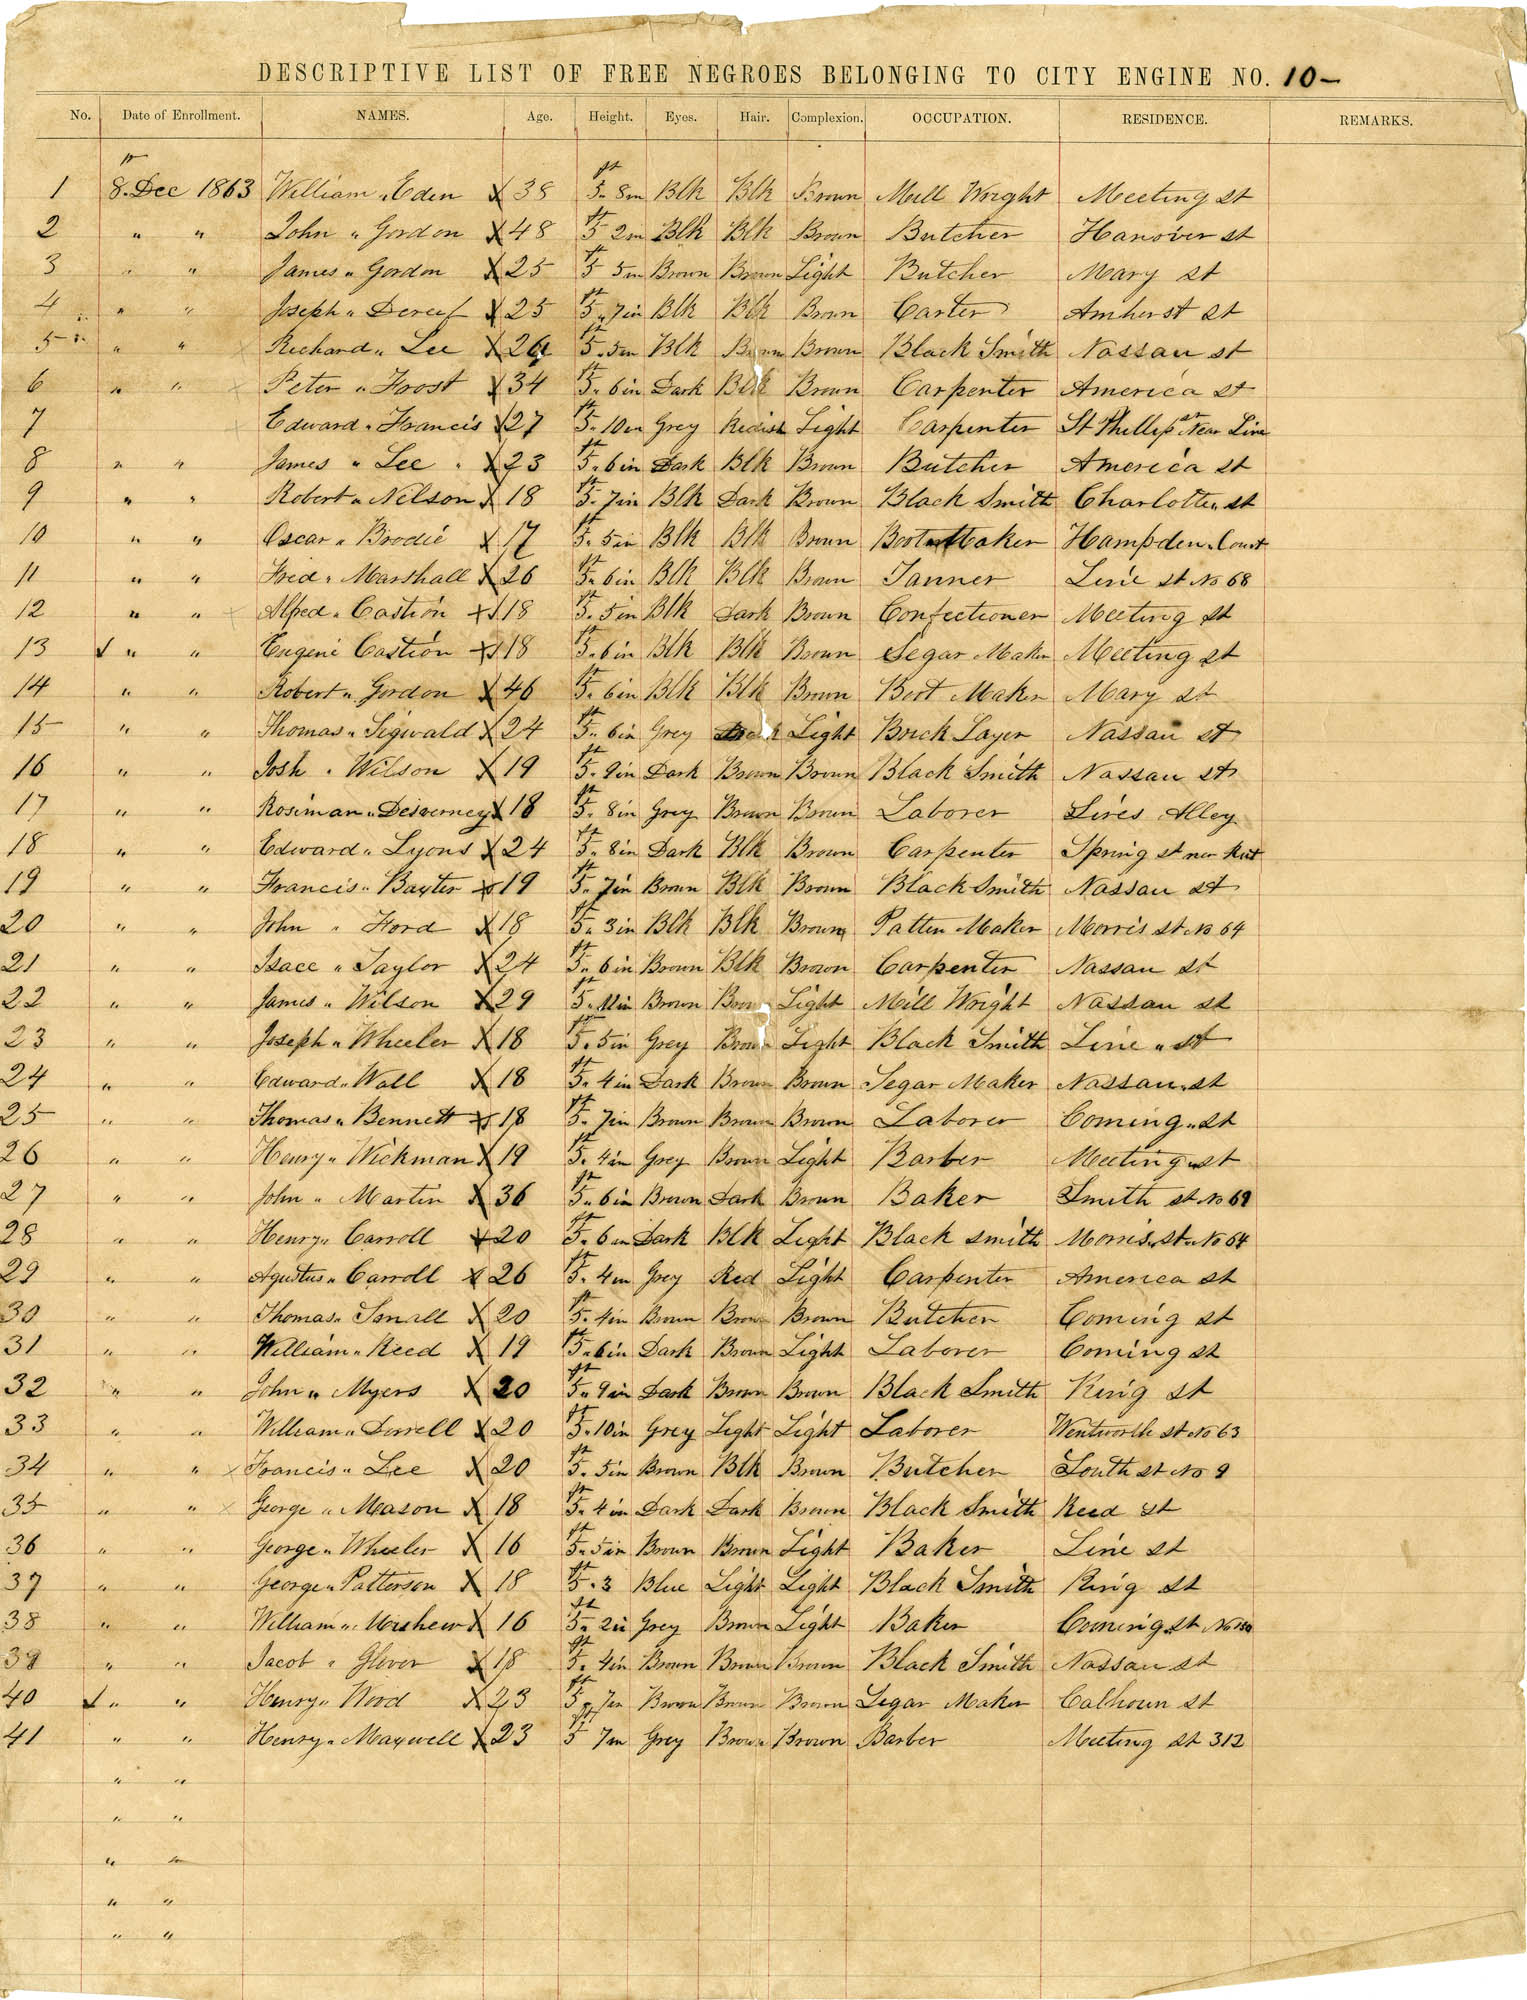 Descriptive List of Free Negroes Belonging to City Engine No. 10 [Copy 1]